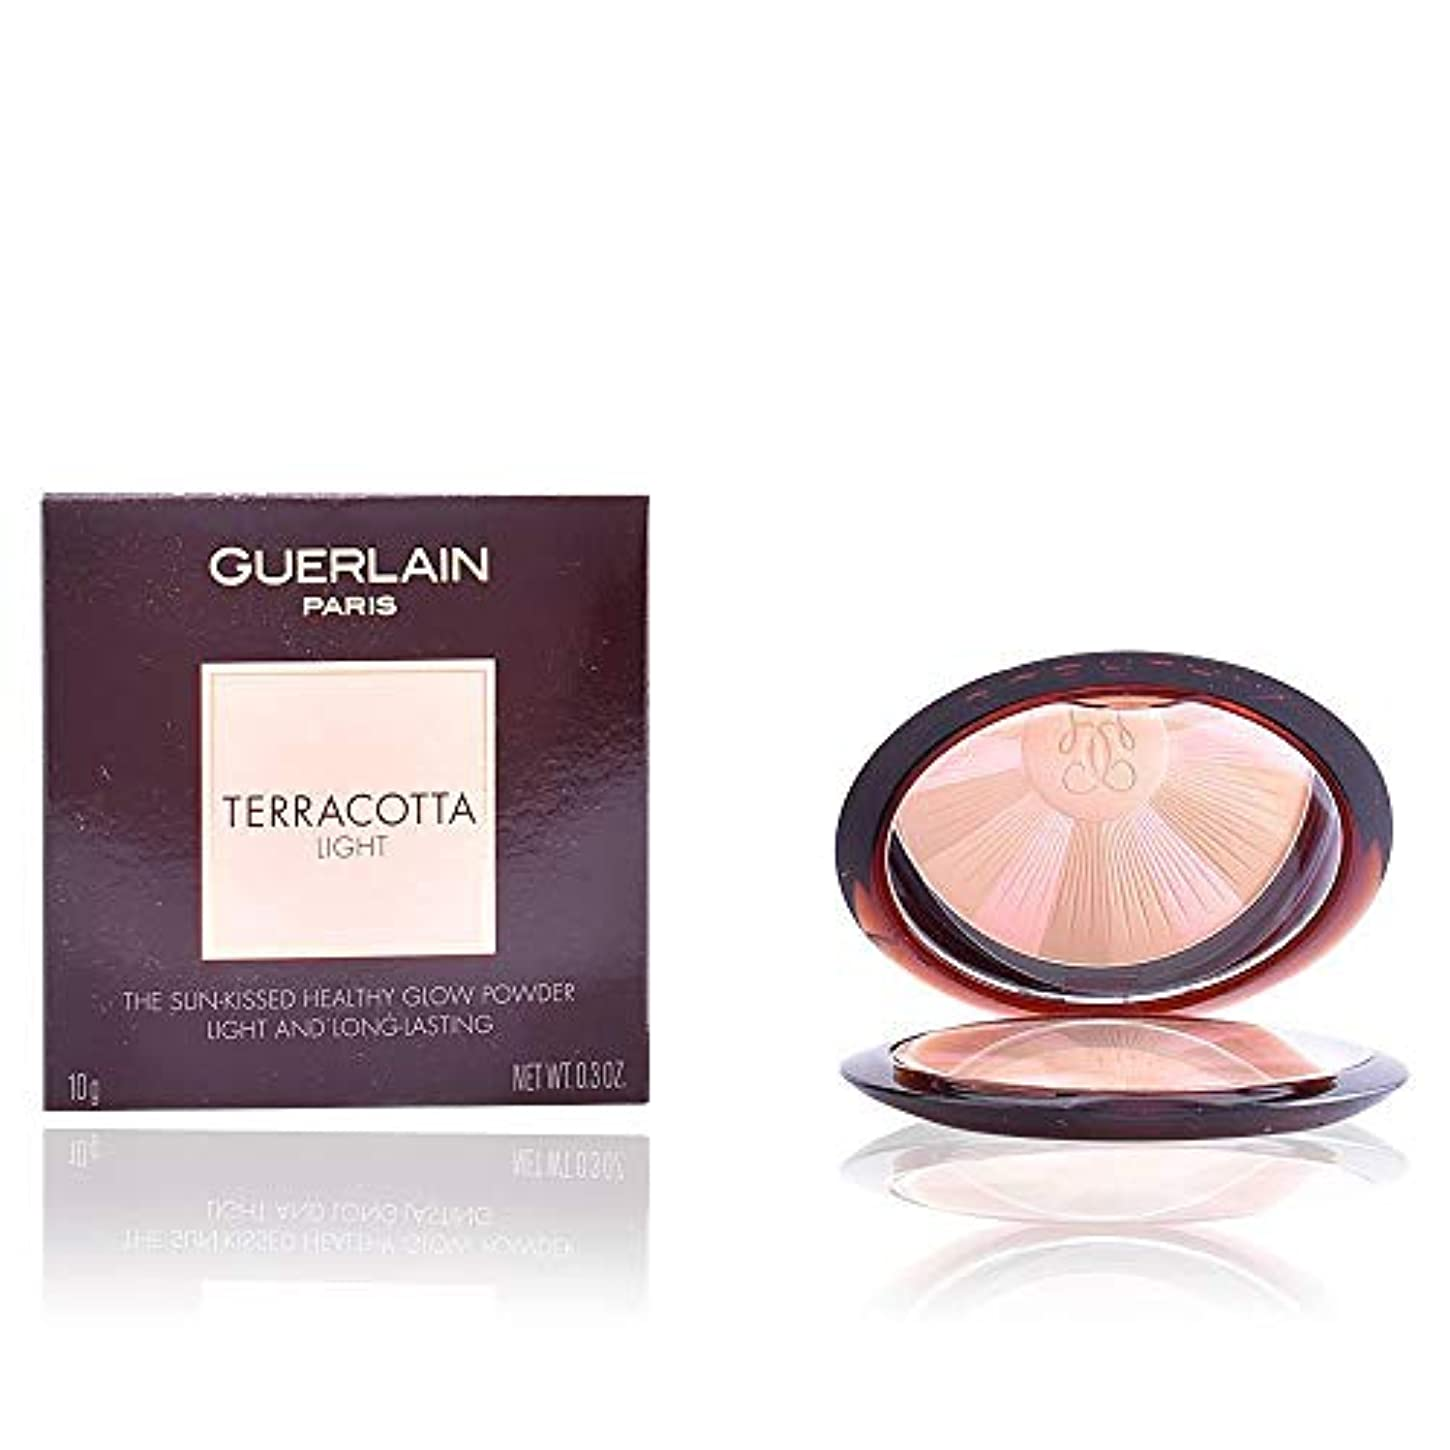 絡まる減る曲がったゲラン Terracotta Light The Sun Kissed Healthy Glow Powder - # 03 Natural Warm 10g/0.3oz並行輸入品